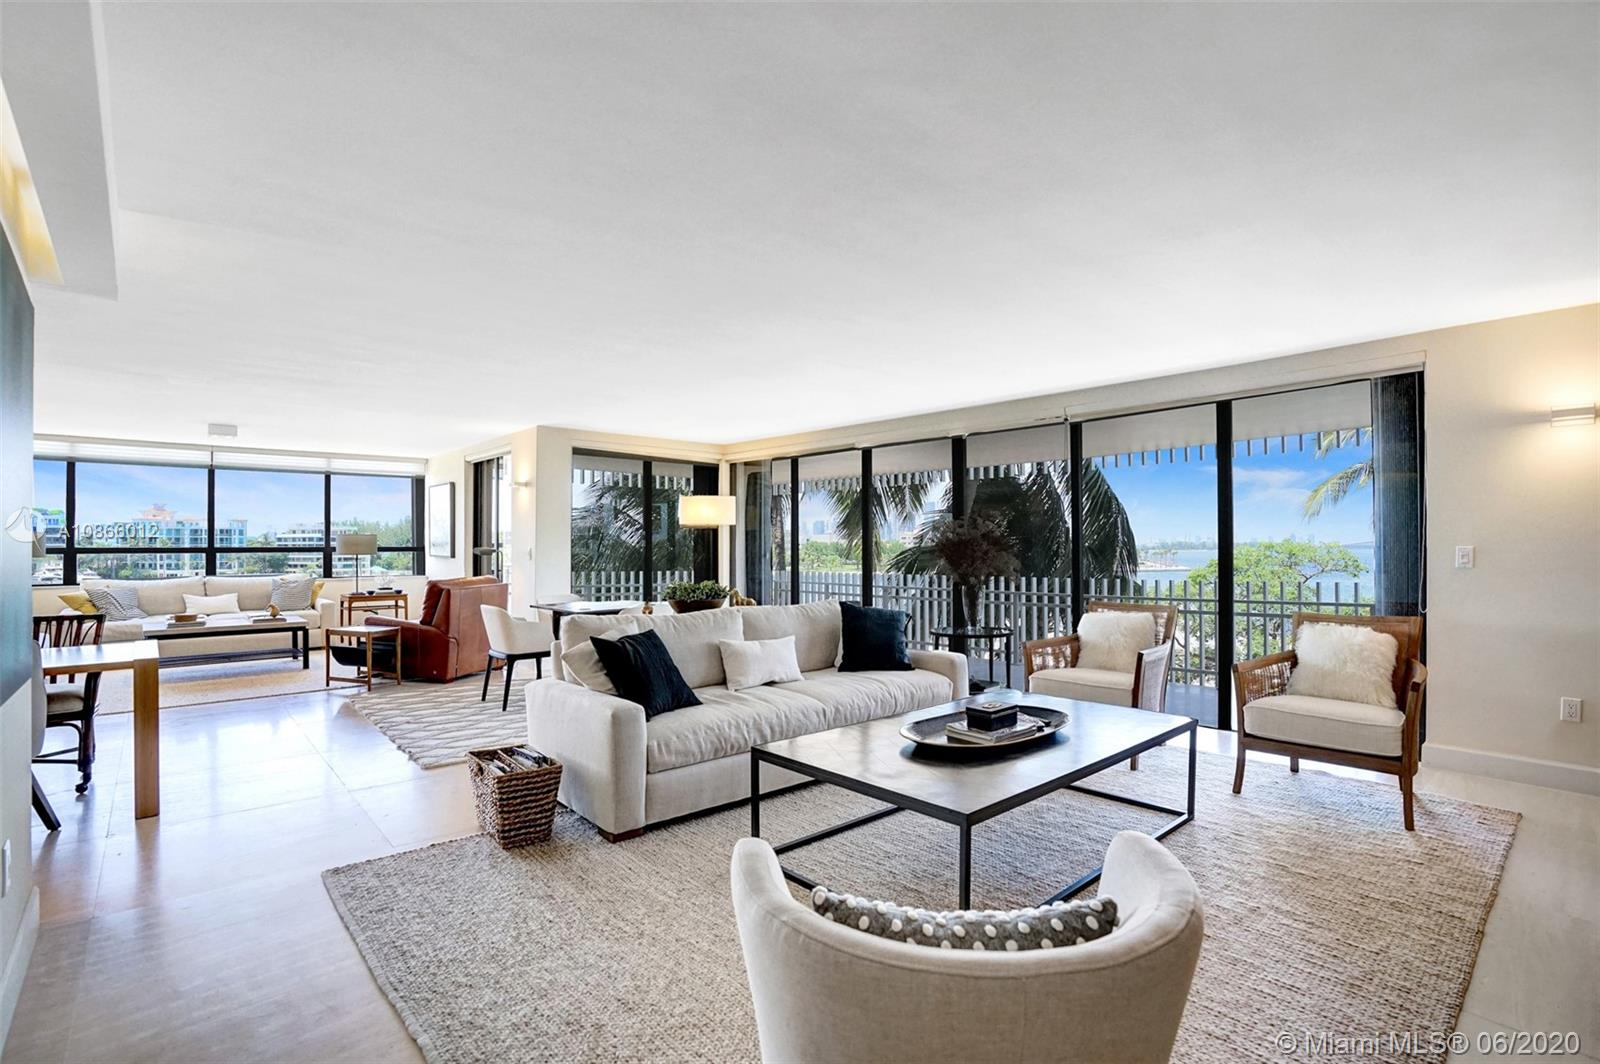 3 Grove Isle Dr # C309, Miami, Florida 33133, 3 Bedrooms Bedrooms, ,3 BathroomsBathrooms,Residential,For Sale,3 Grove Isle Dr # C309,A10866012